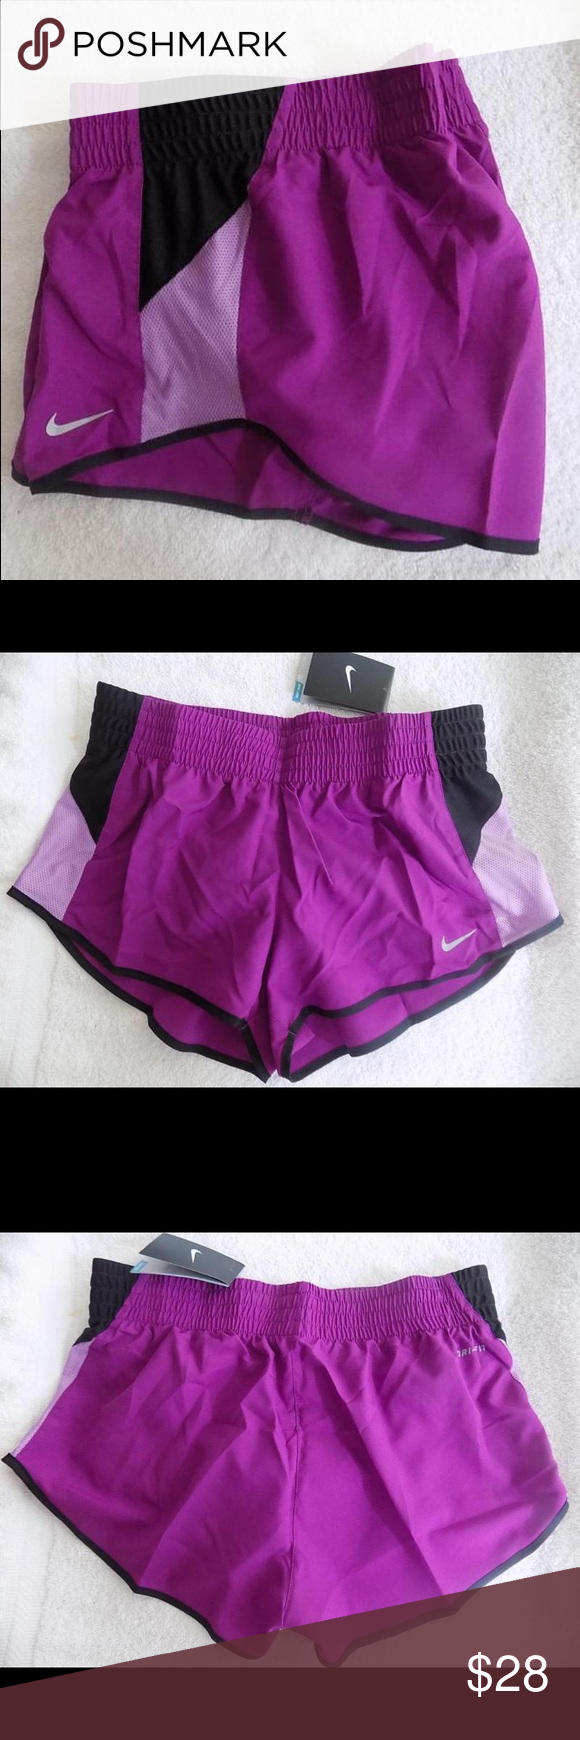 Nike dri fit racer shorts NWT Nike dri fit racer shorts. Features inner briefs, back inner pocket and reflective swoosh on front leg.  Very lightweight! Nike Shorts